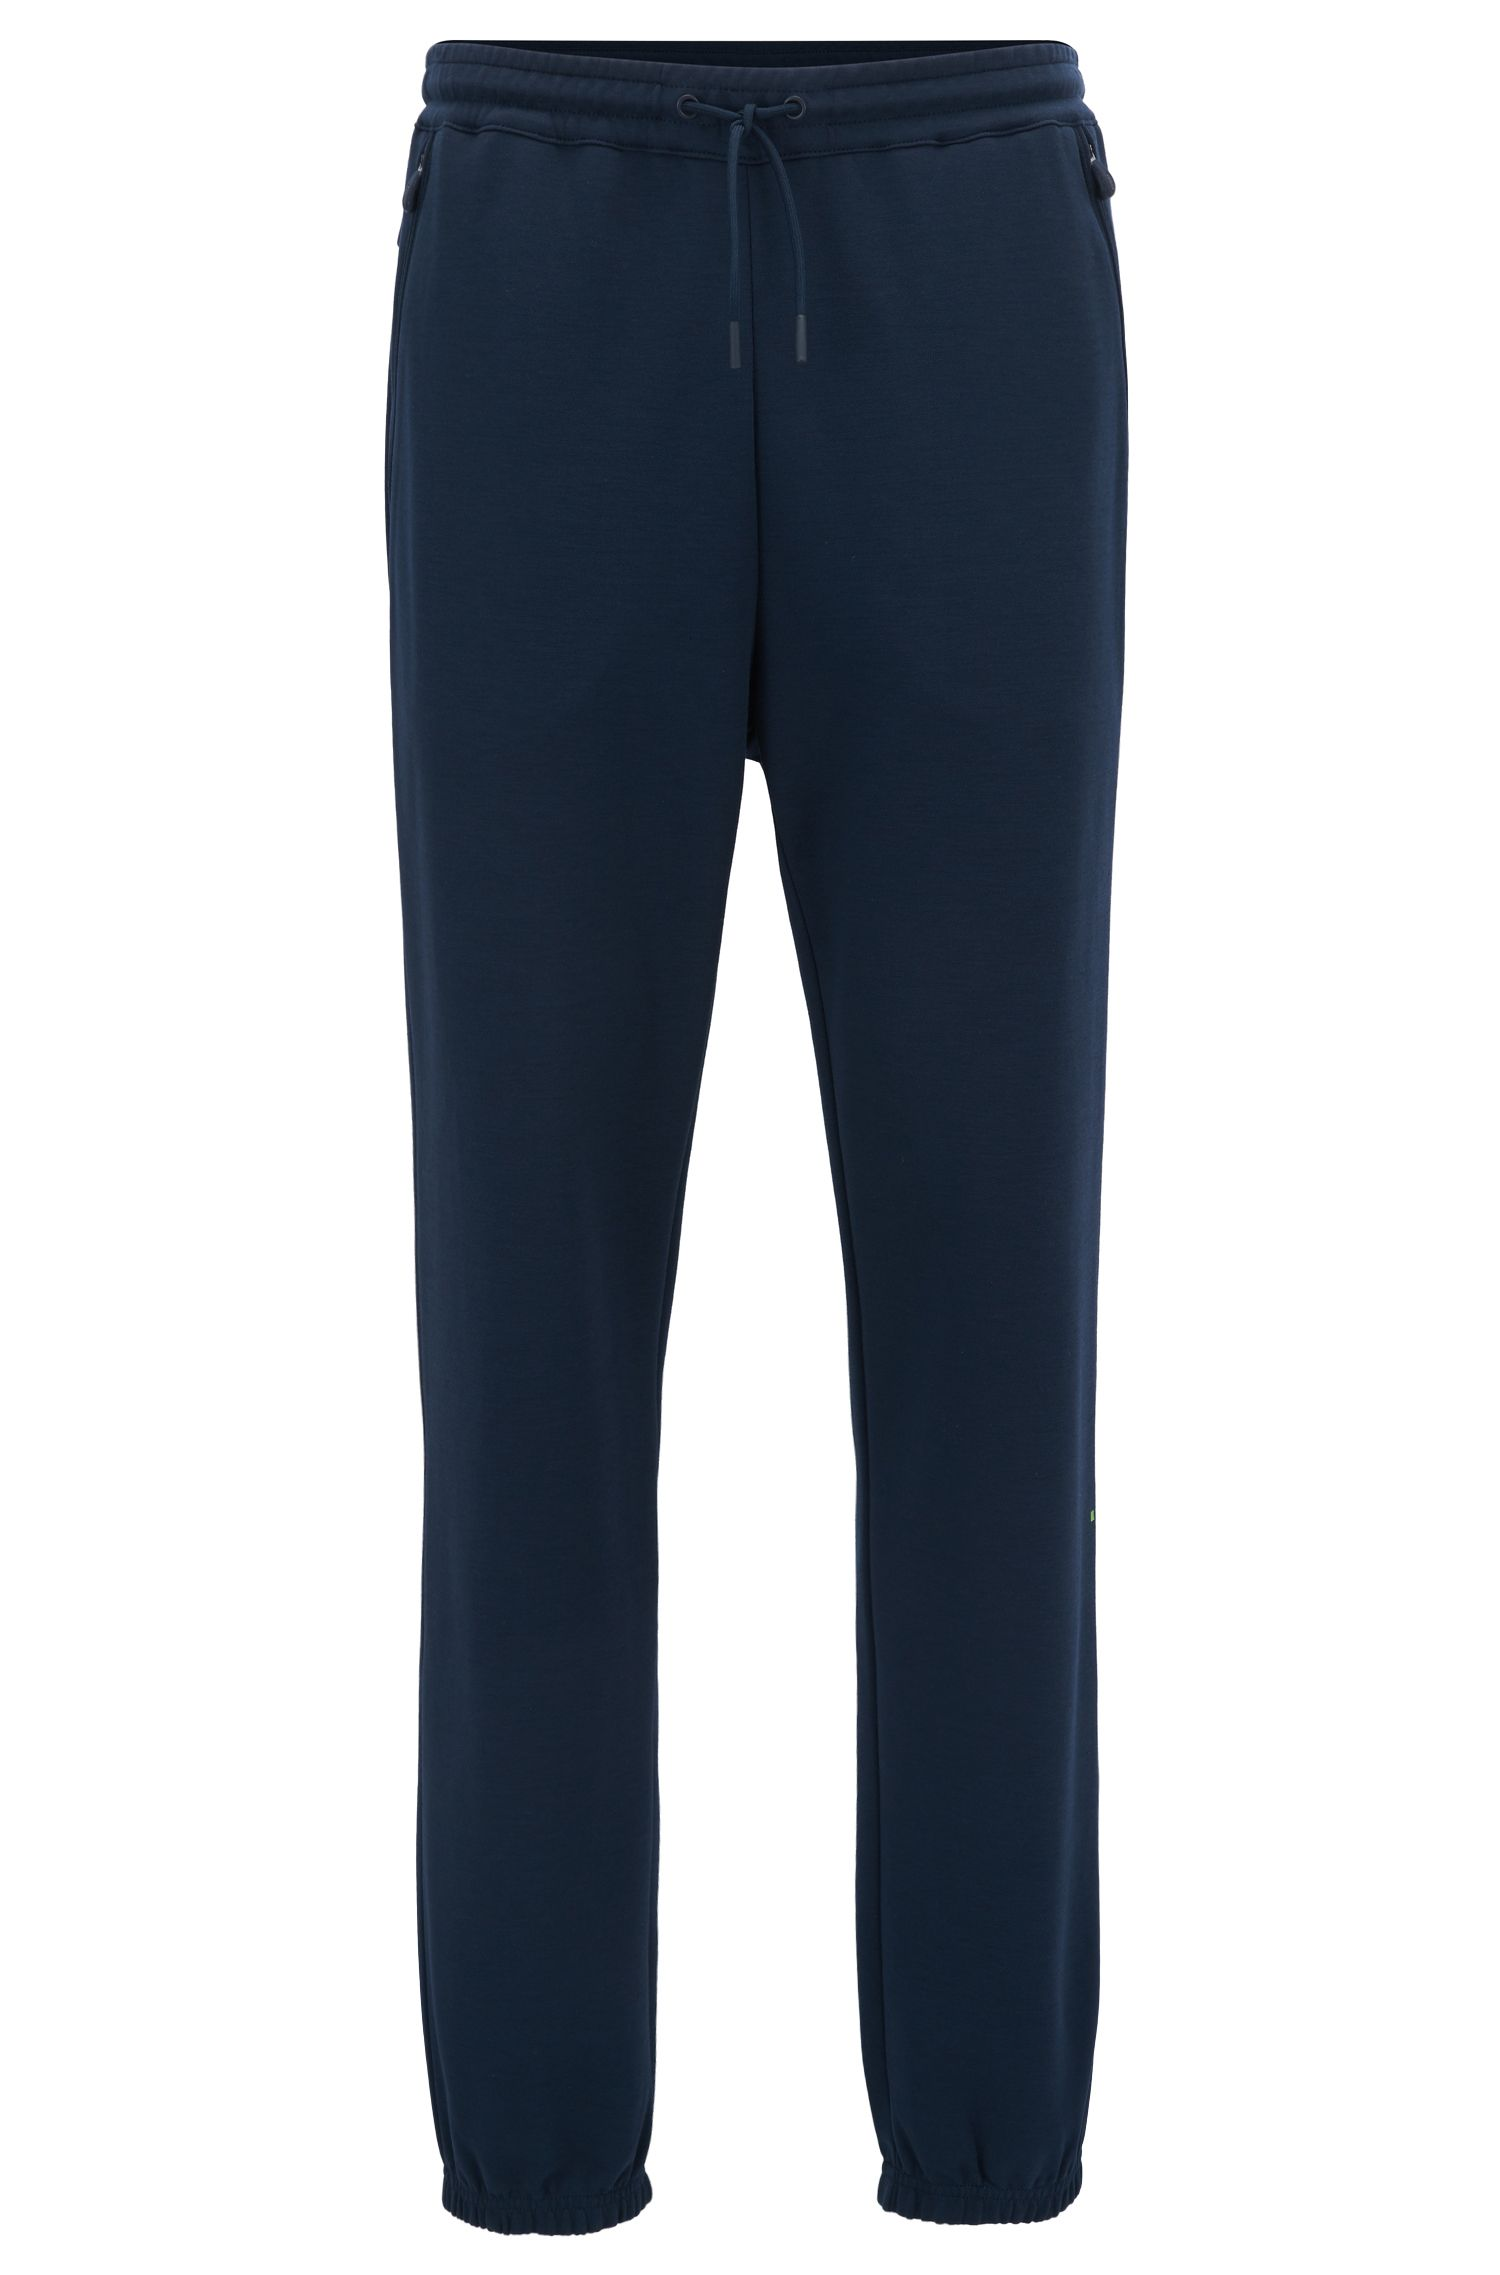 Water-repellent cotton-blend trousers in a slim fit